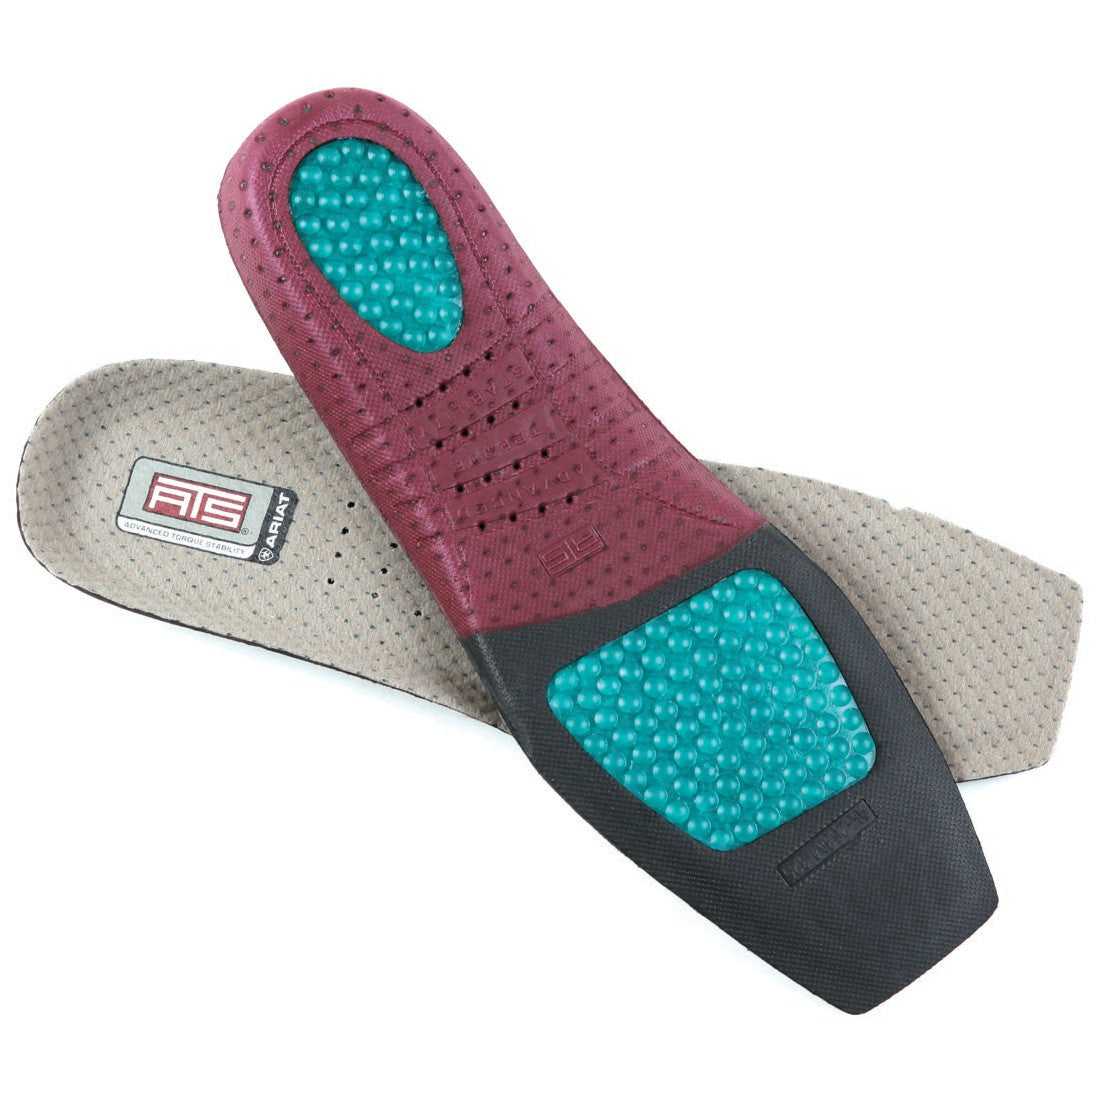 Ariat Women's Wide Square Toe ATS Footbed Insoles